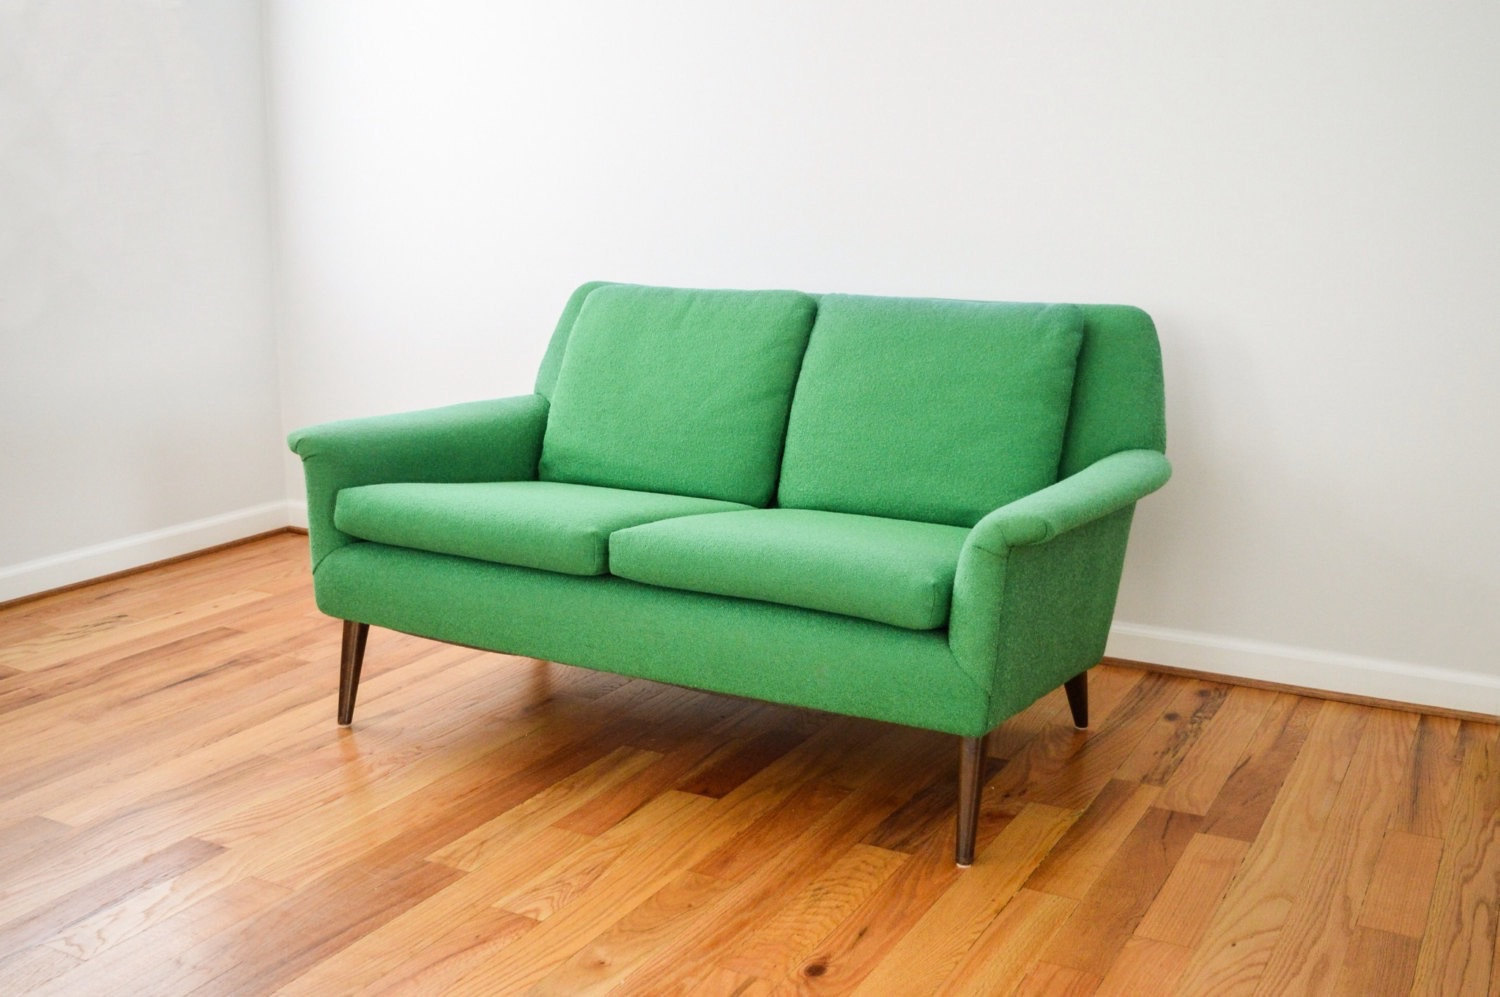 Elegant-Mid-Century-Modern-Loveseat-89-With-Additional-Sofas-and-Couches-Set-with-Mid-Century-Modern-Loveseat